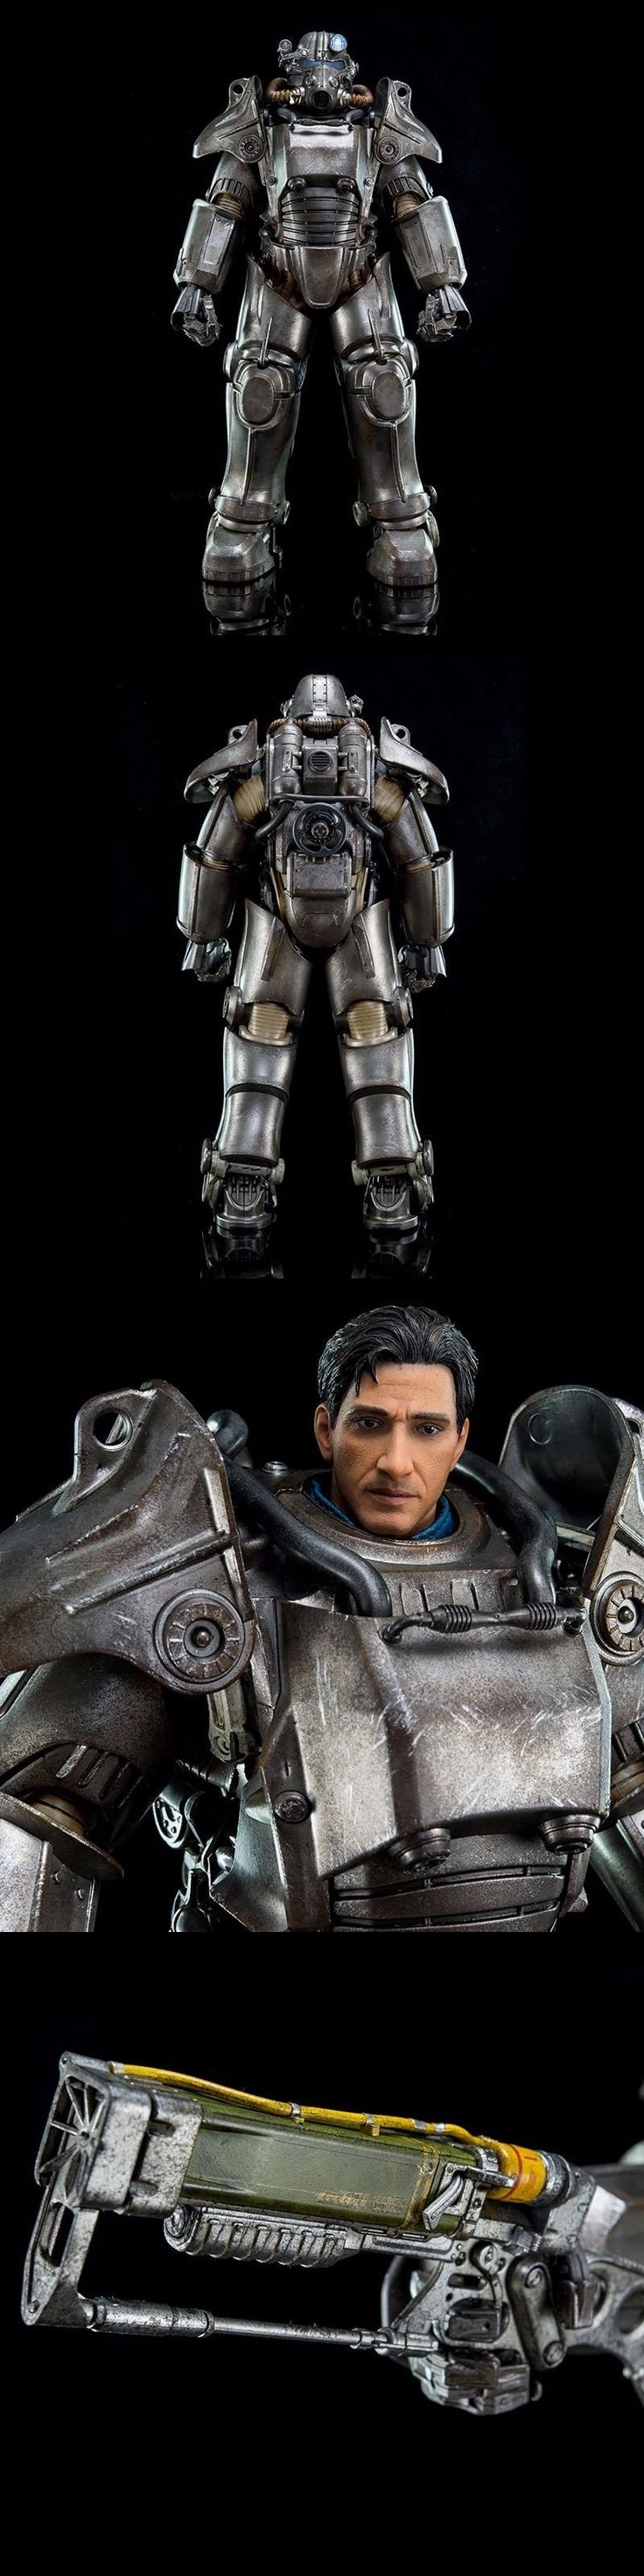 TV Movie and Video Games 75708: Threezero Fallout 4 T-45 Power Armor 1:6 Scale Action Figure -> BUY IT NOW ONLY: $425.95 on eBay!